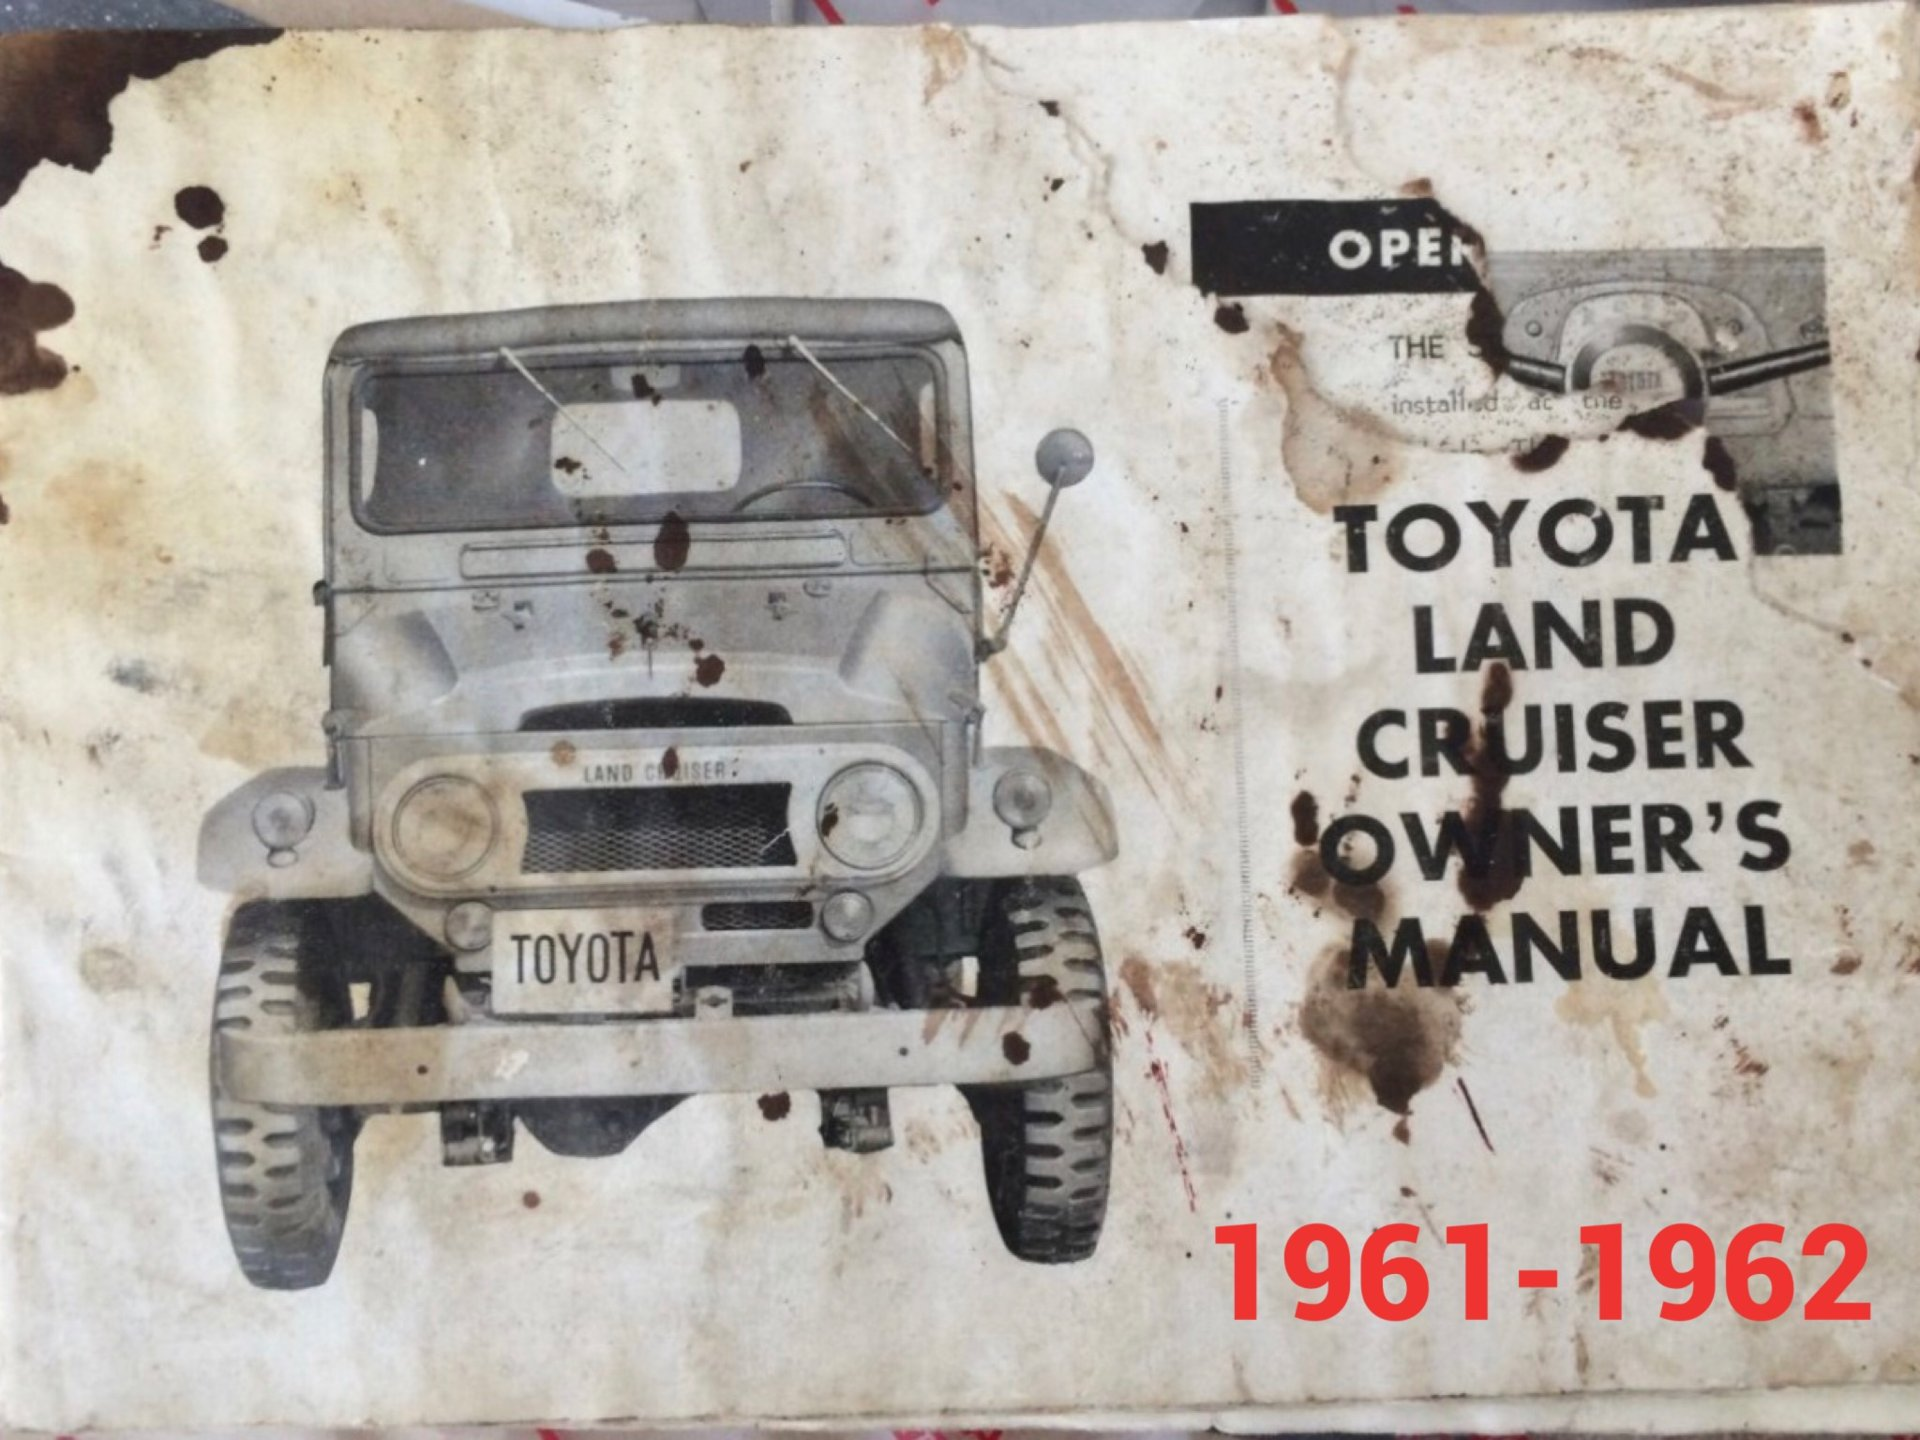 Wanted - Owners manuals 1961/62